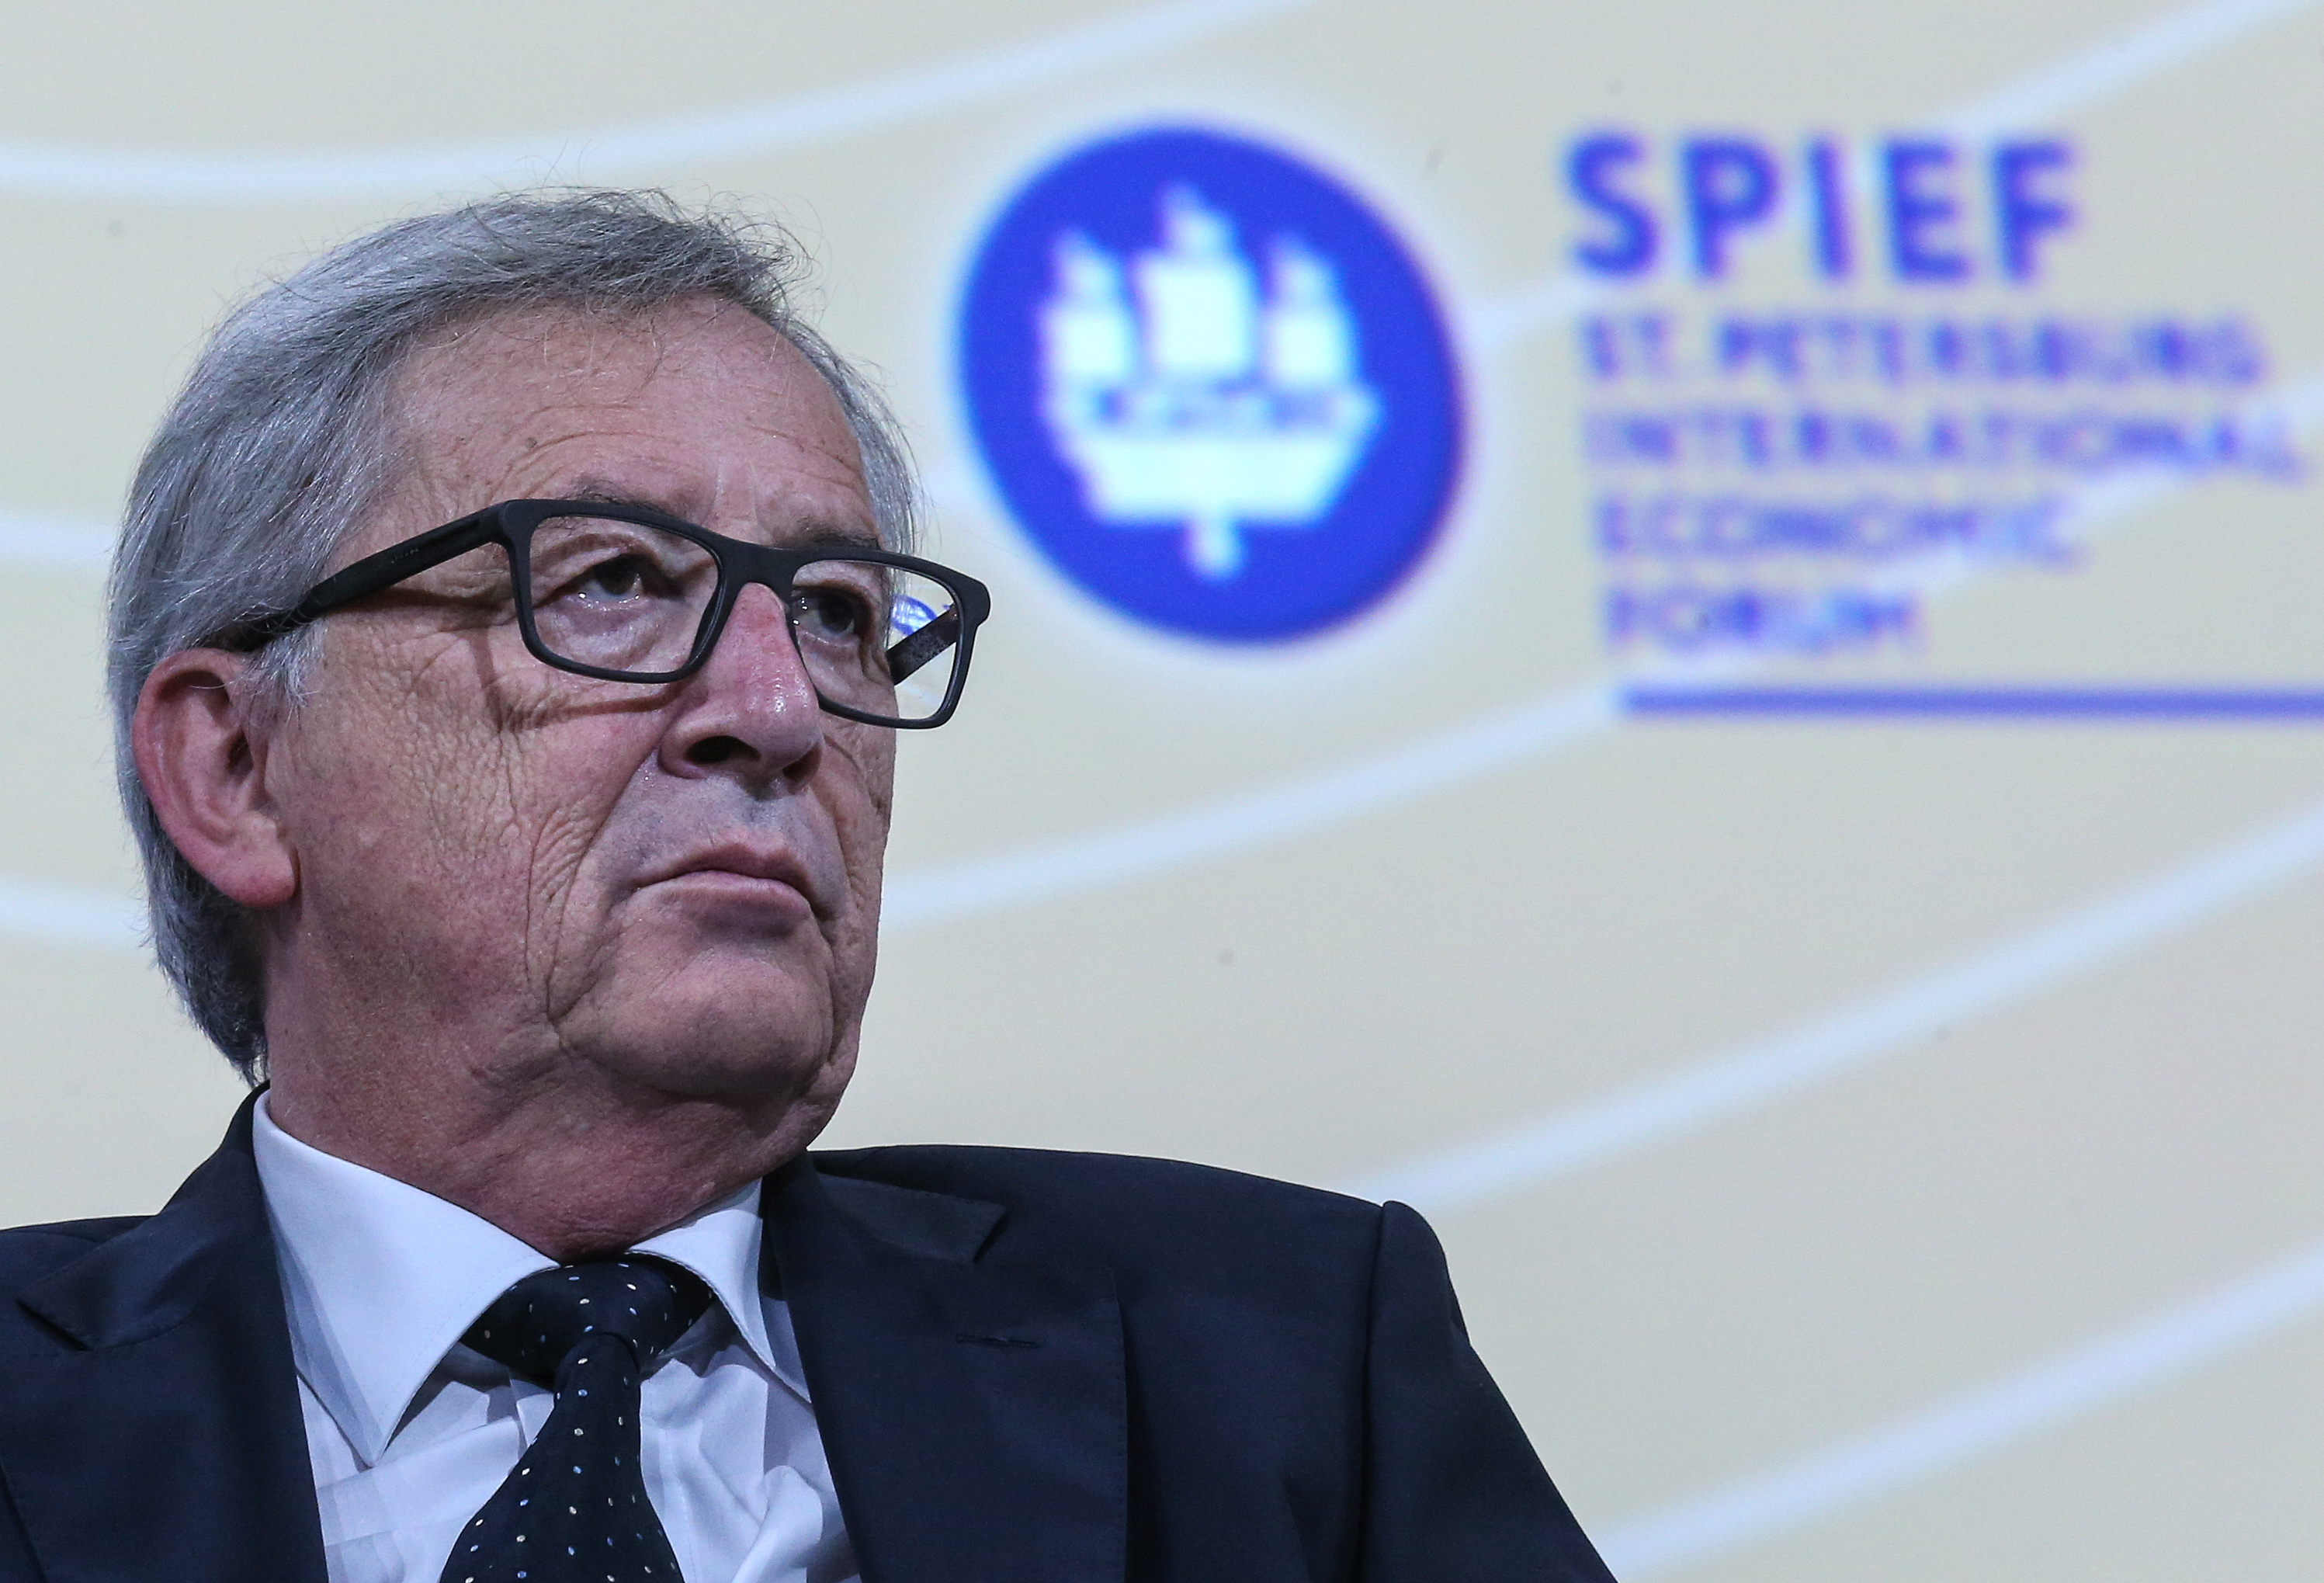 The European Commission head Jean-Claude Juncker at the St. Petersburg Economic Forum.